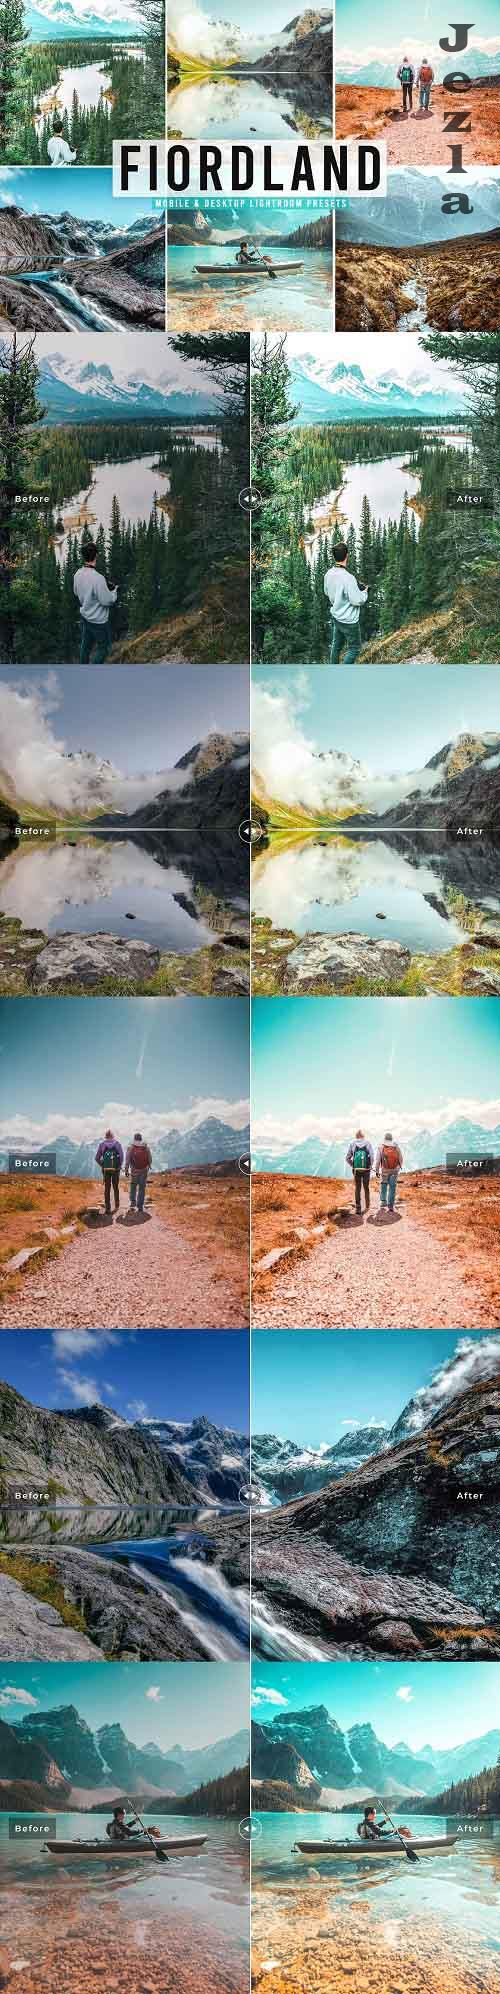 CreativeMarket - Fiordland Pro Lightroom Presets - 5496278 - Mobile & Desktop